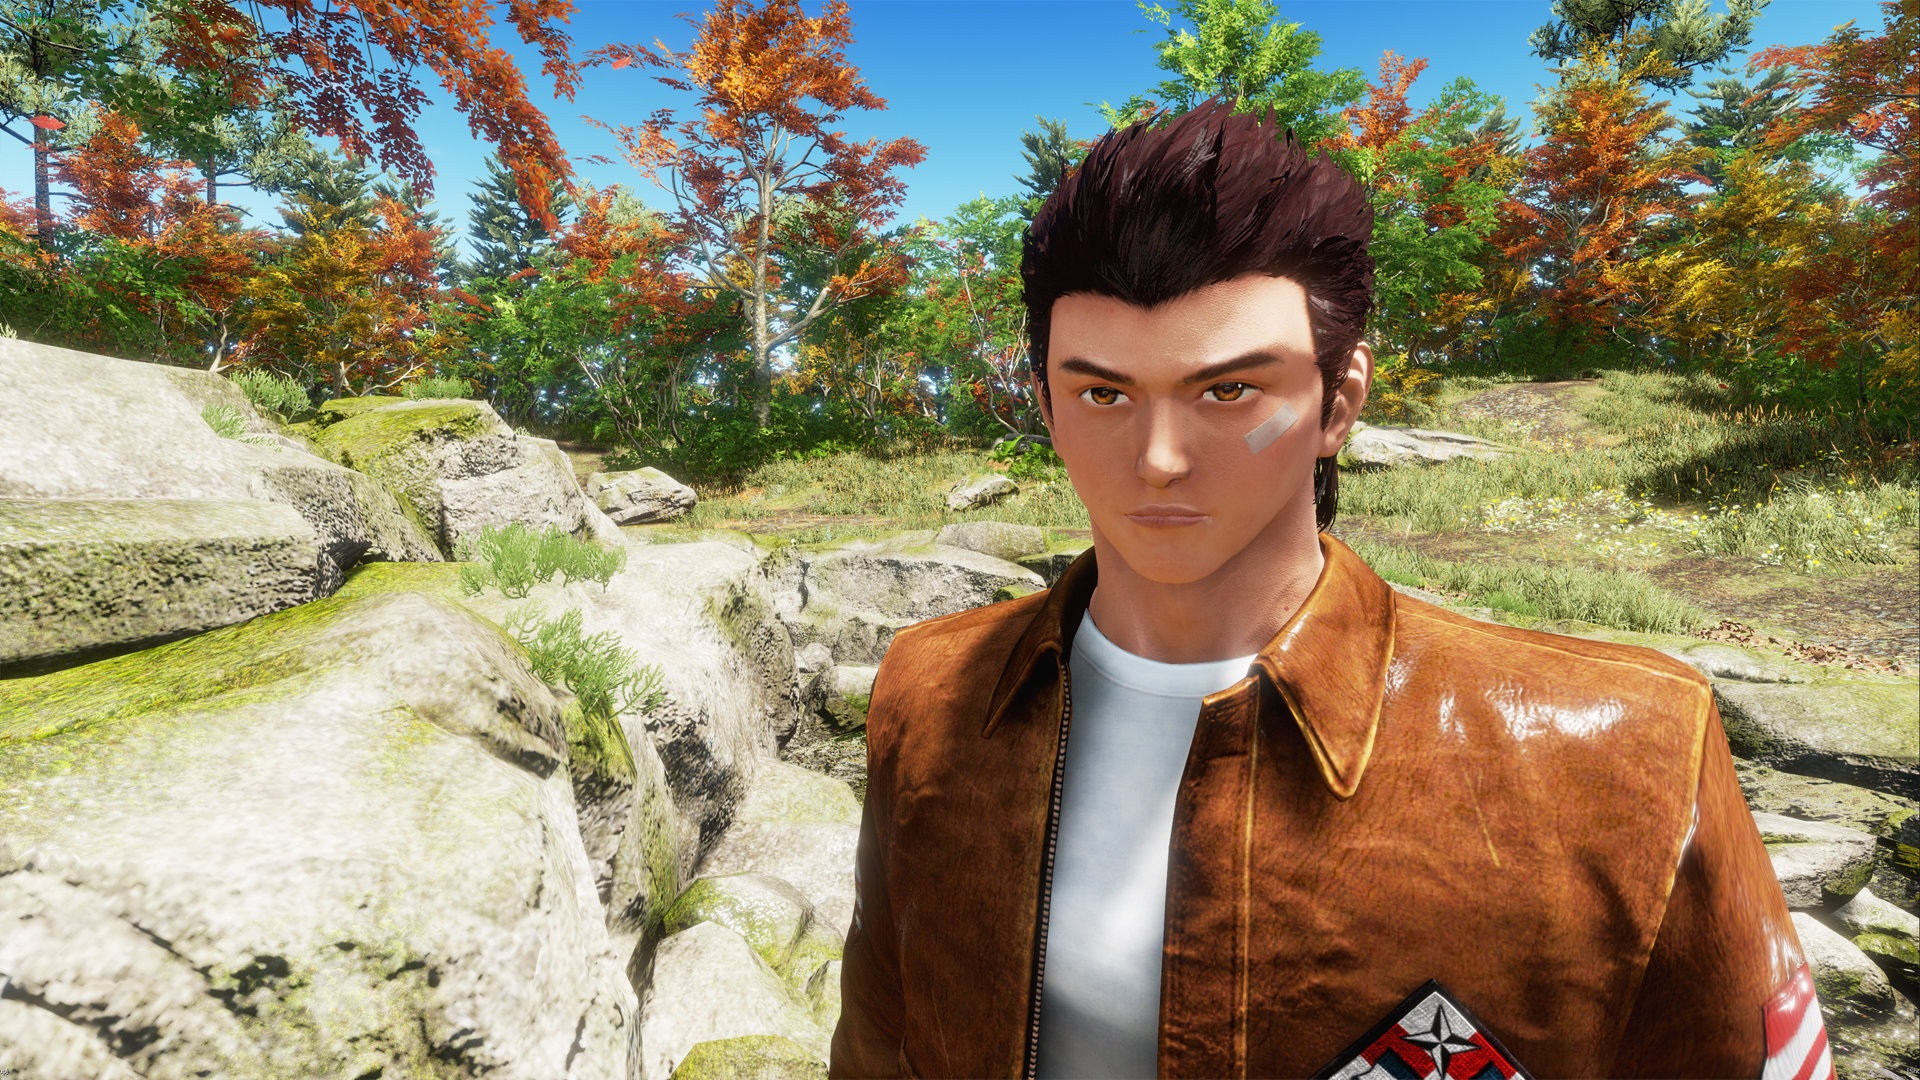 Shenmue III | All the Biggest Video Game Releases in November 2019 | Gammicks